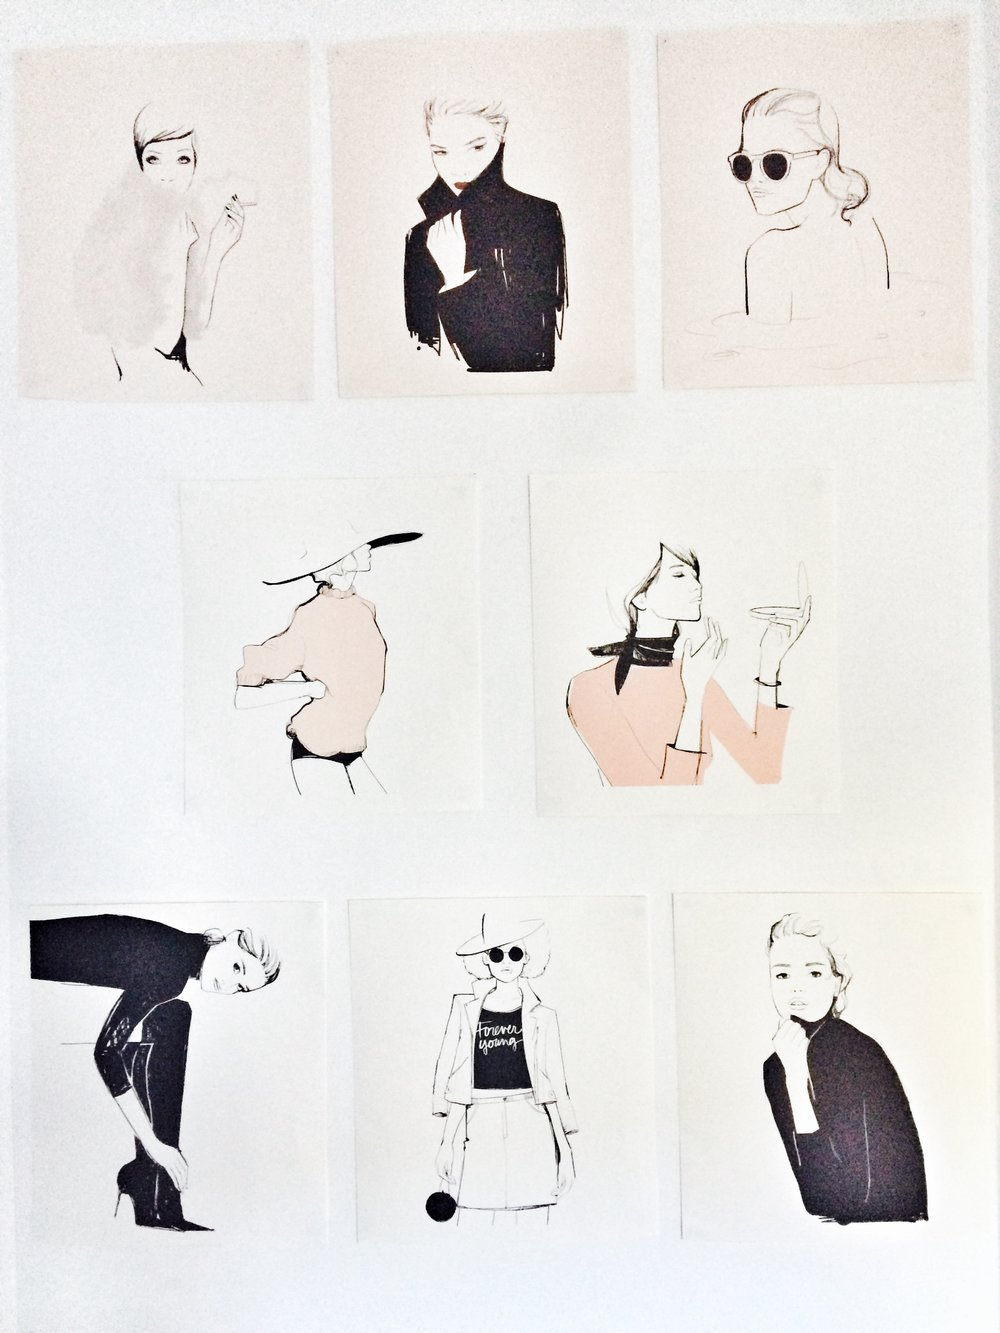 Prints from the Garance Doré 2015 and 2016 calenders repurposed as prints